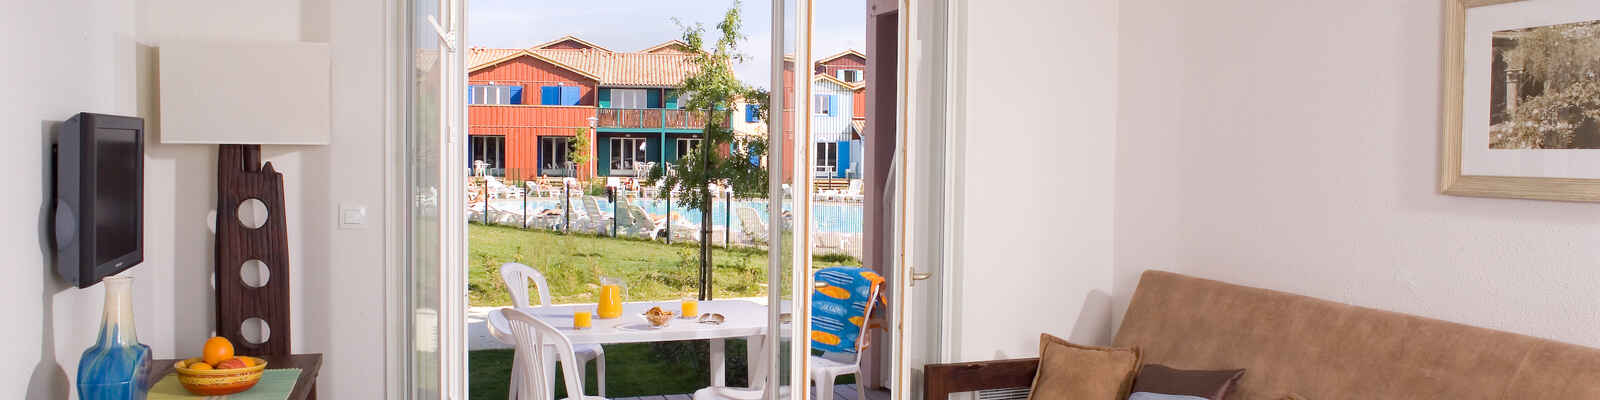 Apartment in Gujan-Mestras